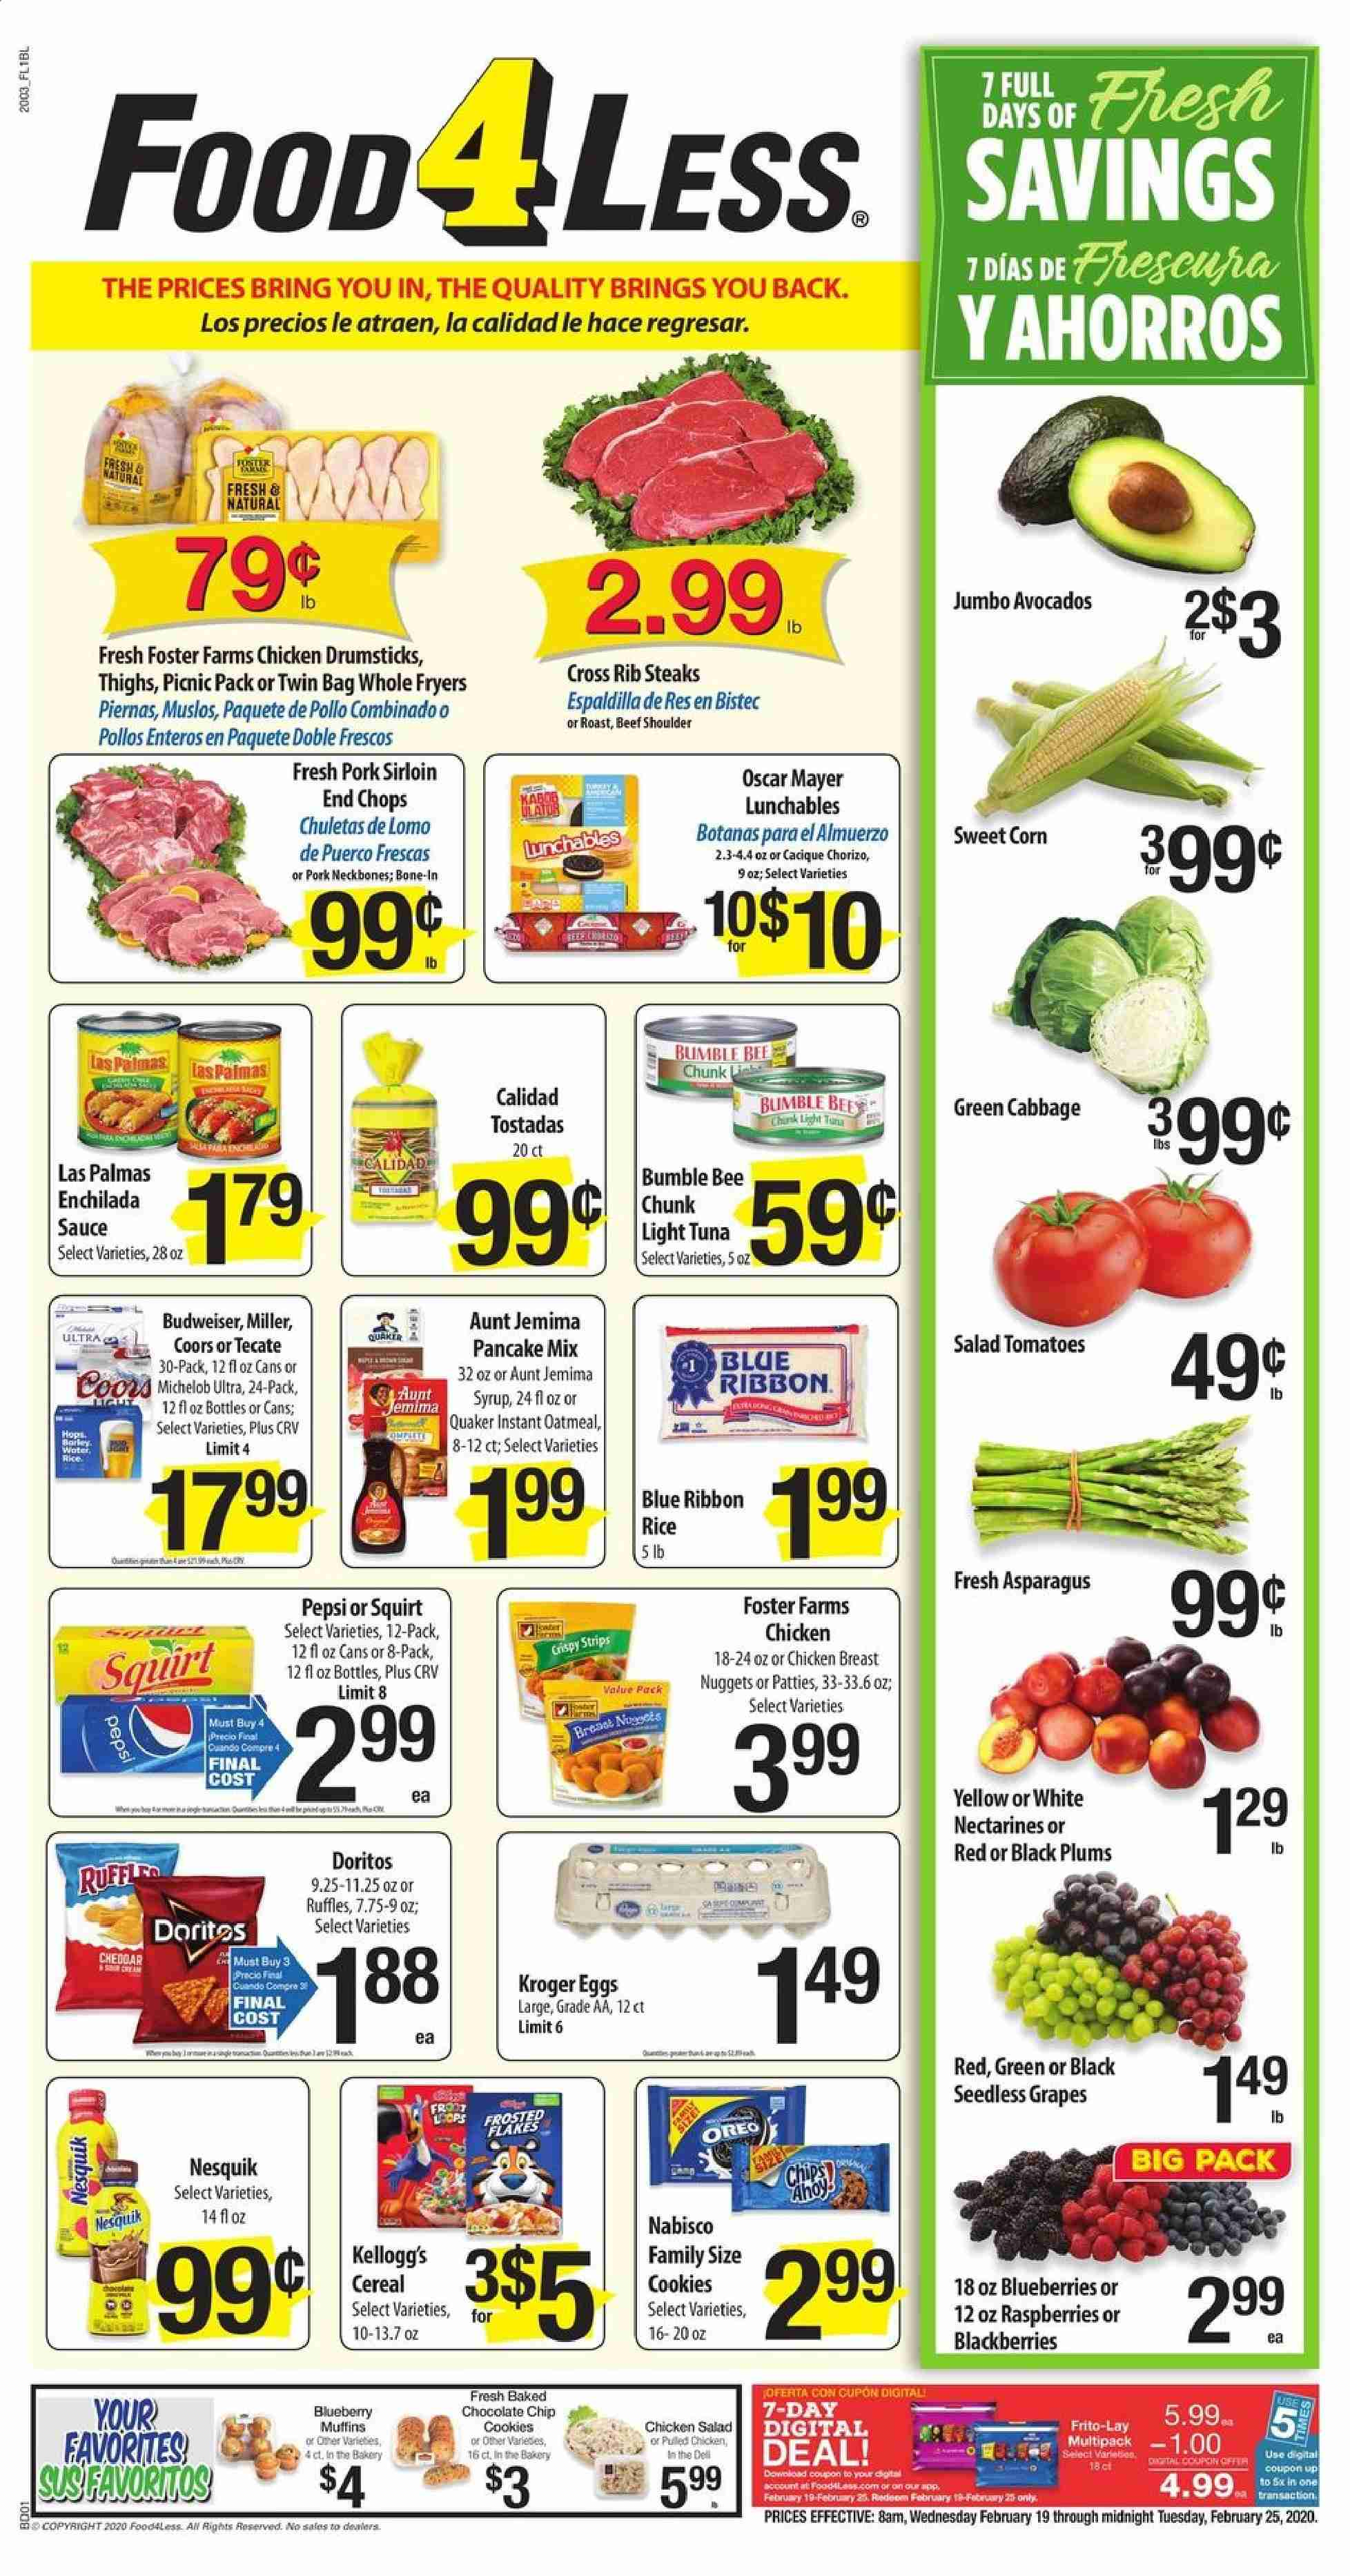 Food 4 Less Flyer - 02.19.2020 - 02.25.2020 - Sales products - Budweiser, Coors, Michelob, asparagus, cabbage, corn, tomatoes, avocado, blackberries, blueberries, grapes, limes, nectarines, raspberries, seedless grapes, plums, pancake, muffin, tuna, nuggets, chorizo, salad, cheddar, Oreo, eggs, sauce, cookies, chocolate, Doritos, chips, oatmeal, enchilada sauce, light tuna, barley, cereals, rice, Pepsi, syrup, chicken, chicken breast, chicken legs, beef meat, pork meat, ribbon, Bumblebee. Page 1.